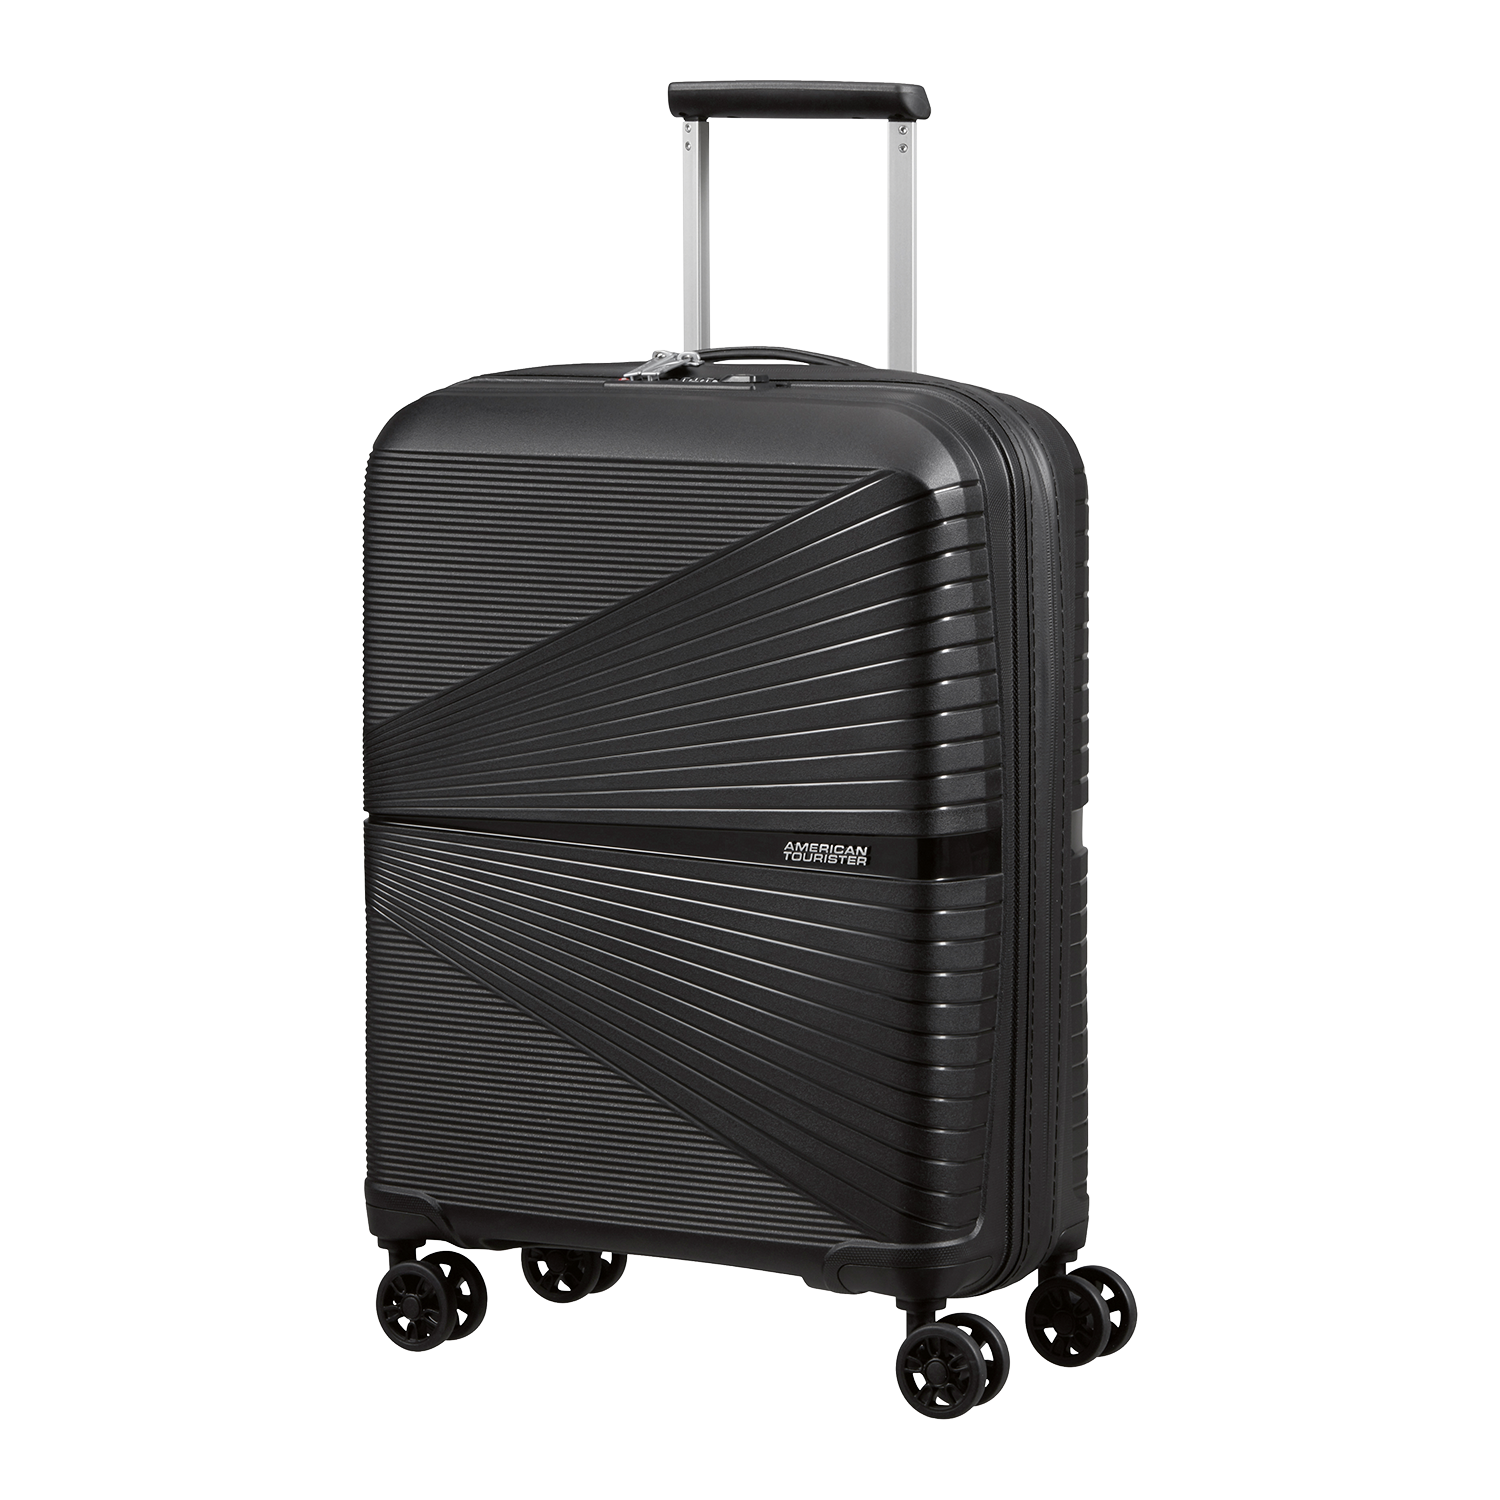 American Tourister Airconic Trolley 55, Onyx Black